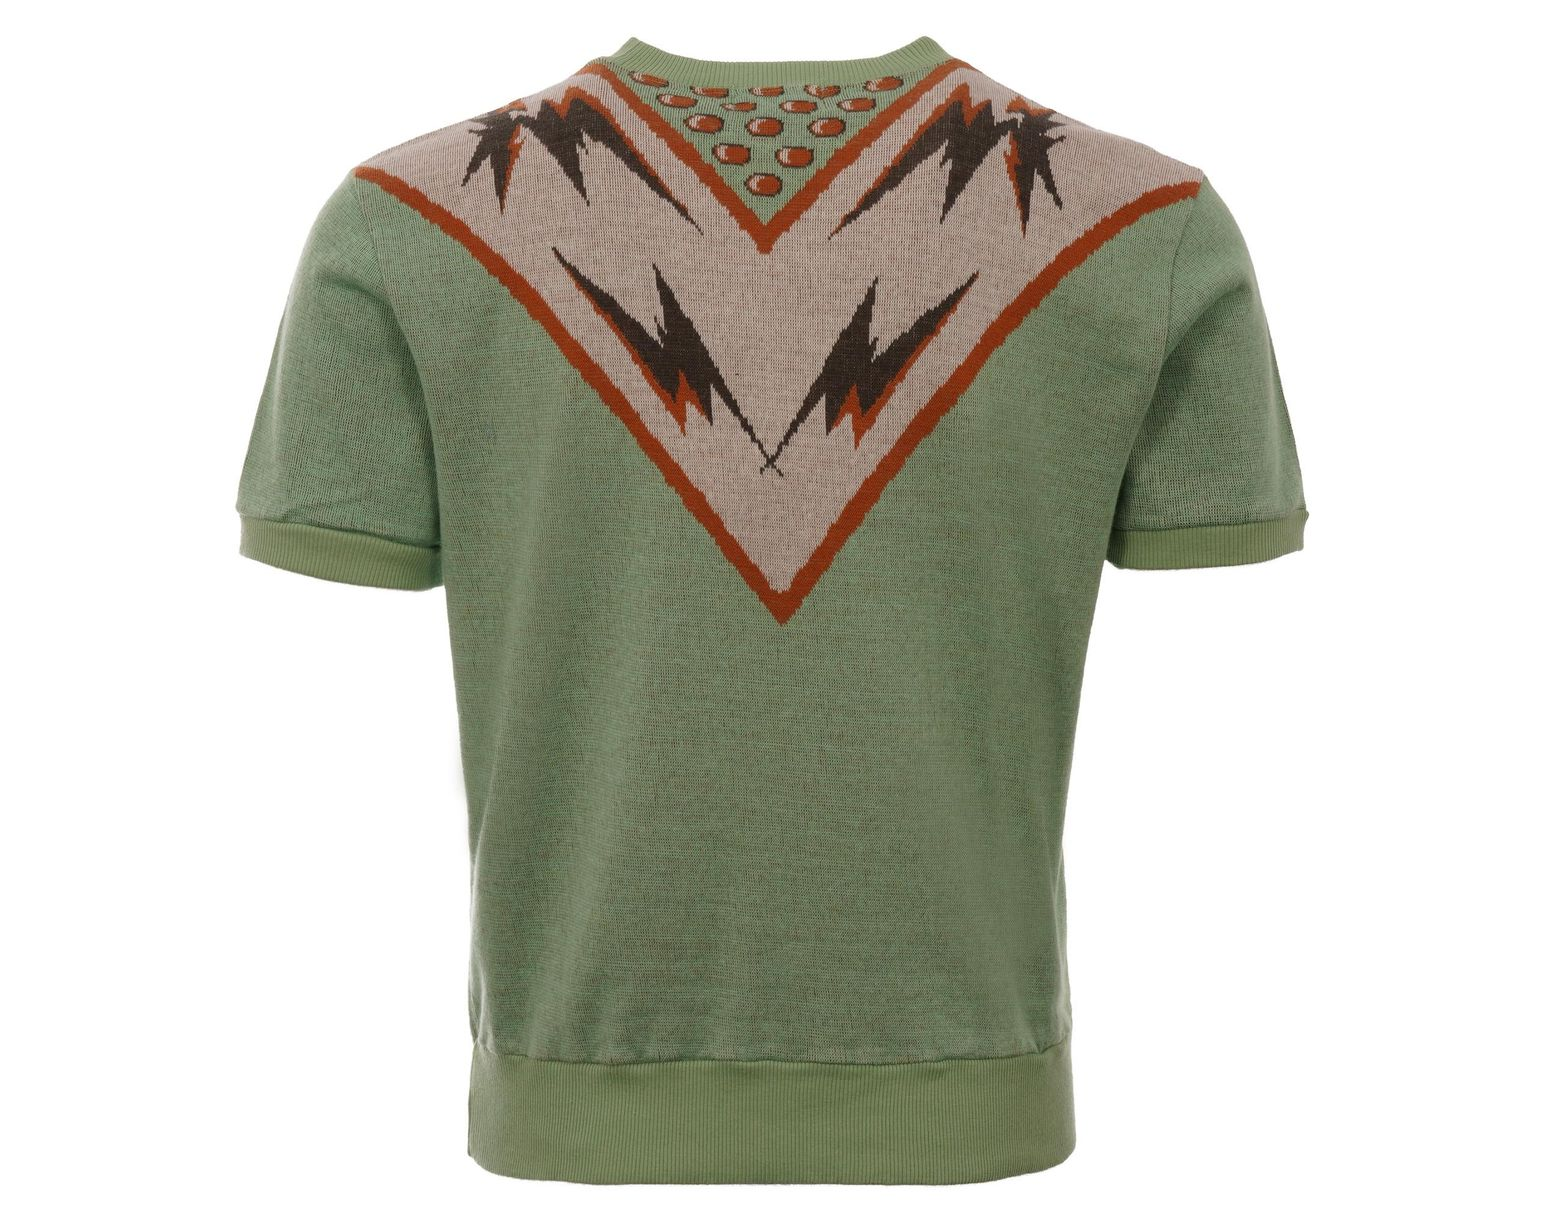 37d17a70 Levi's Space Cadet Knitted T-shirt - Mint in Green for Men - Lyst